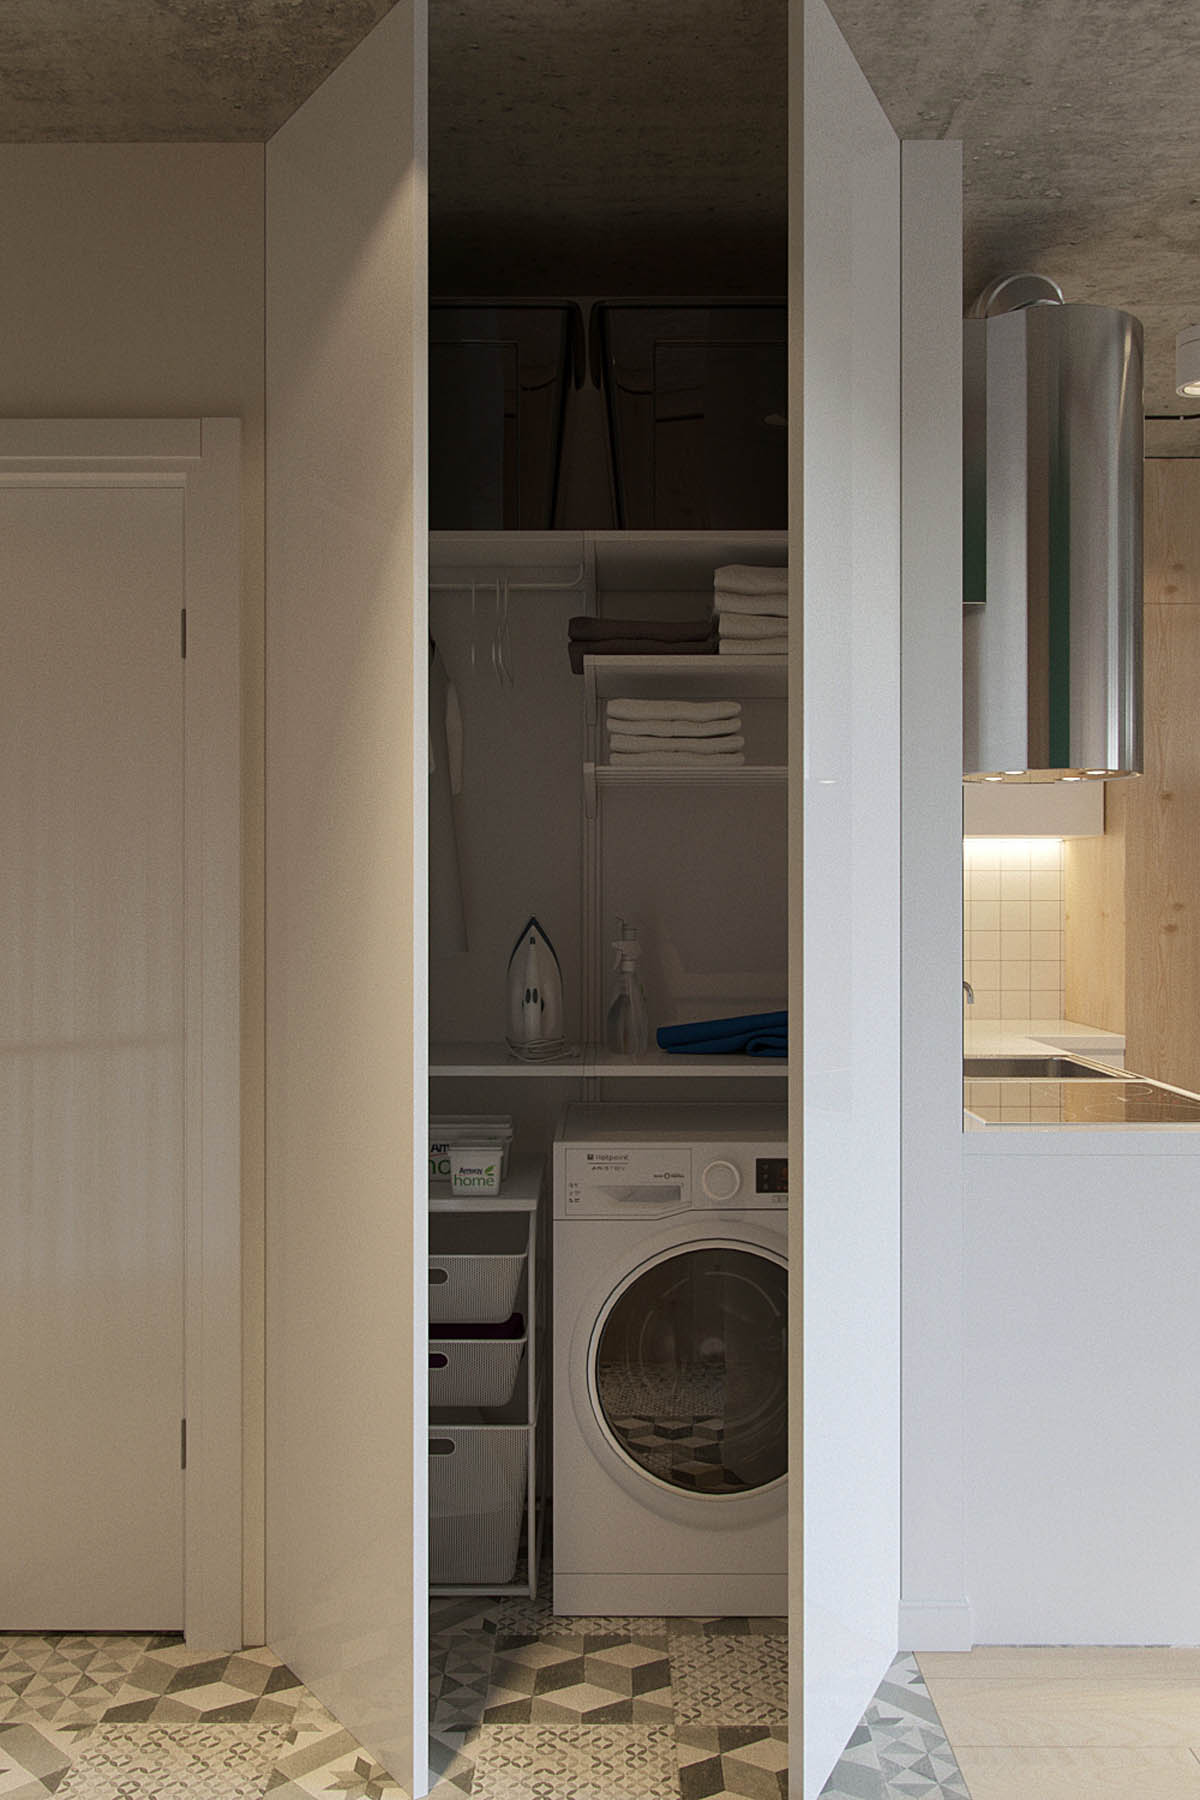 Hidden Laundry Cabinet Space Saving Apartment - Industrial russian interior with quirky colour twists including floor plans